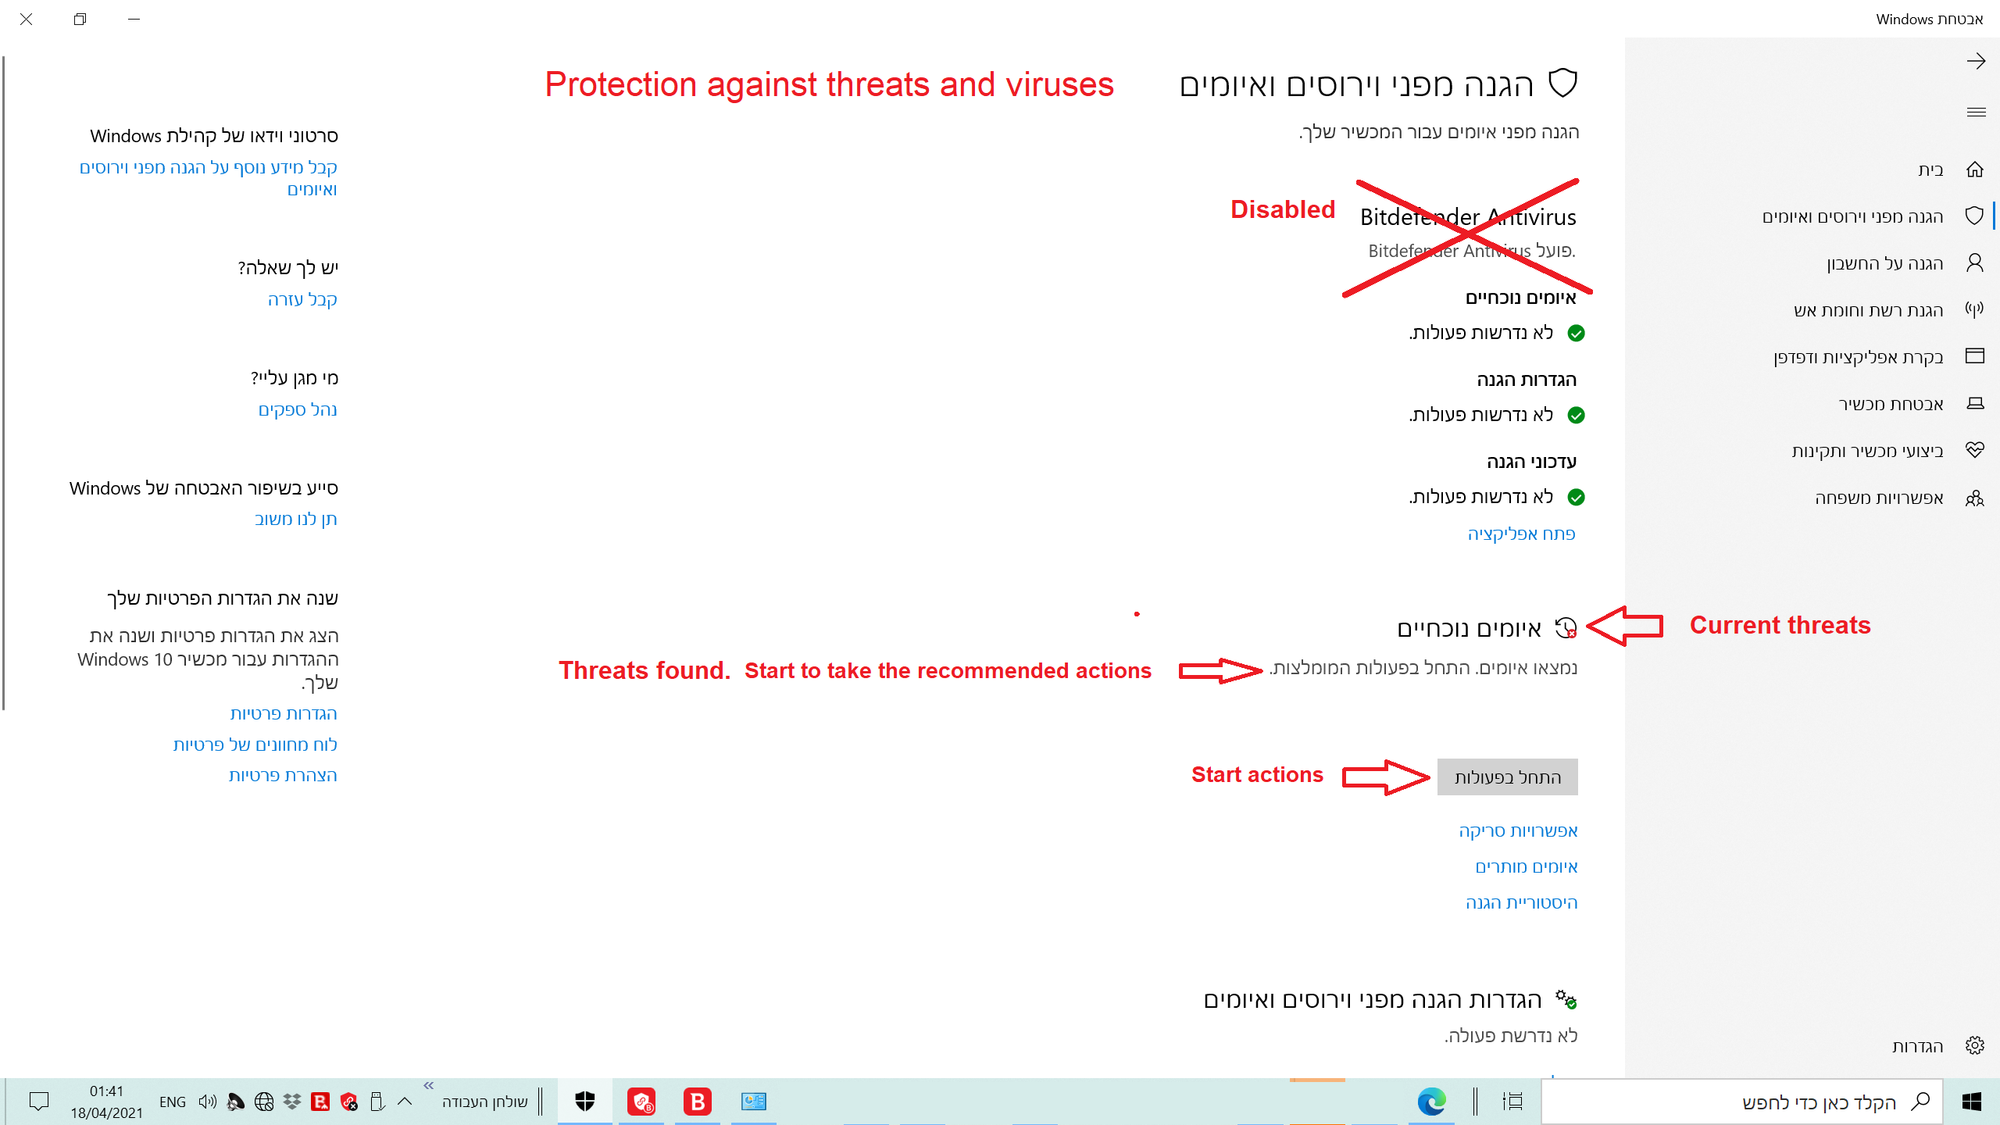 How could it be that Microsoft Defender Anti Virus found threats but is not capable of... 102818c9-3258-4f0c-84c3-b03212874fc5?upload=true.png